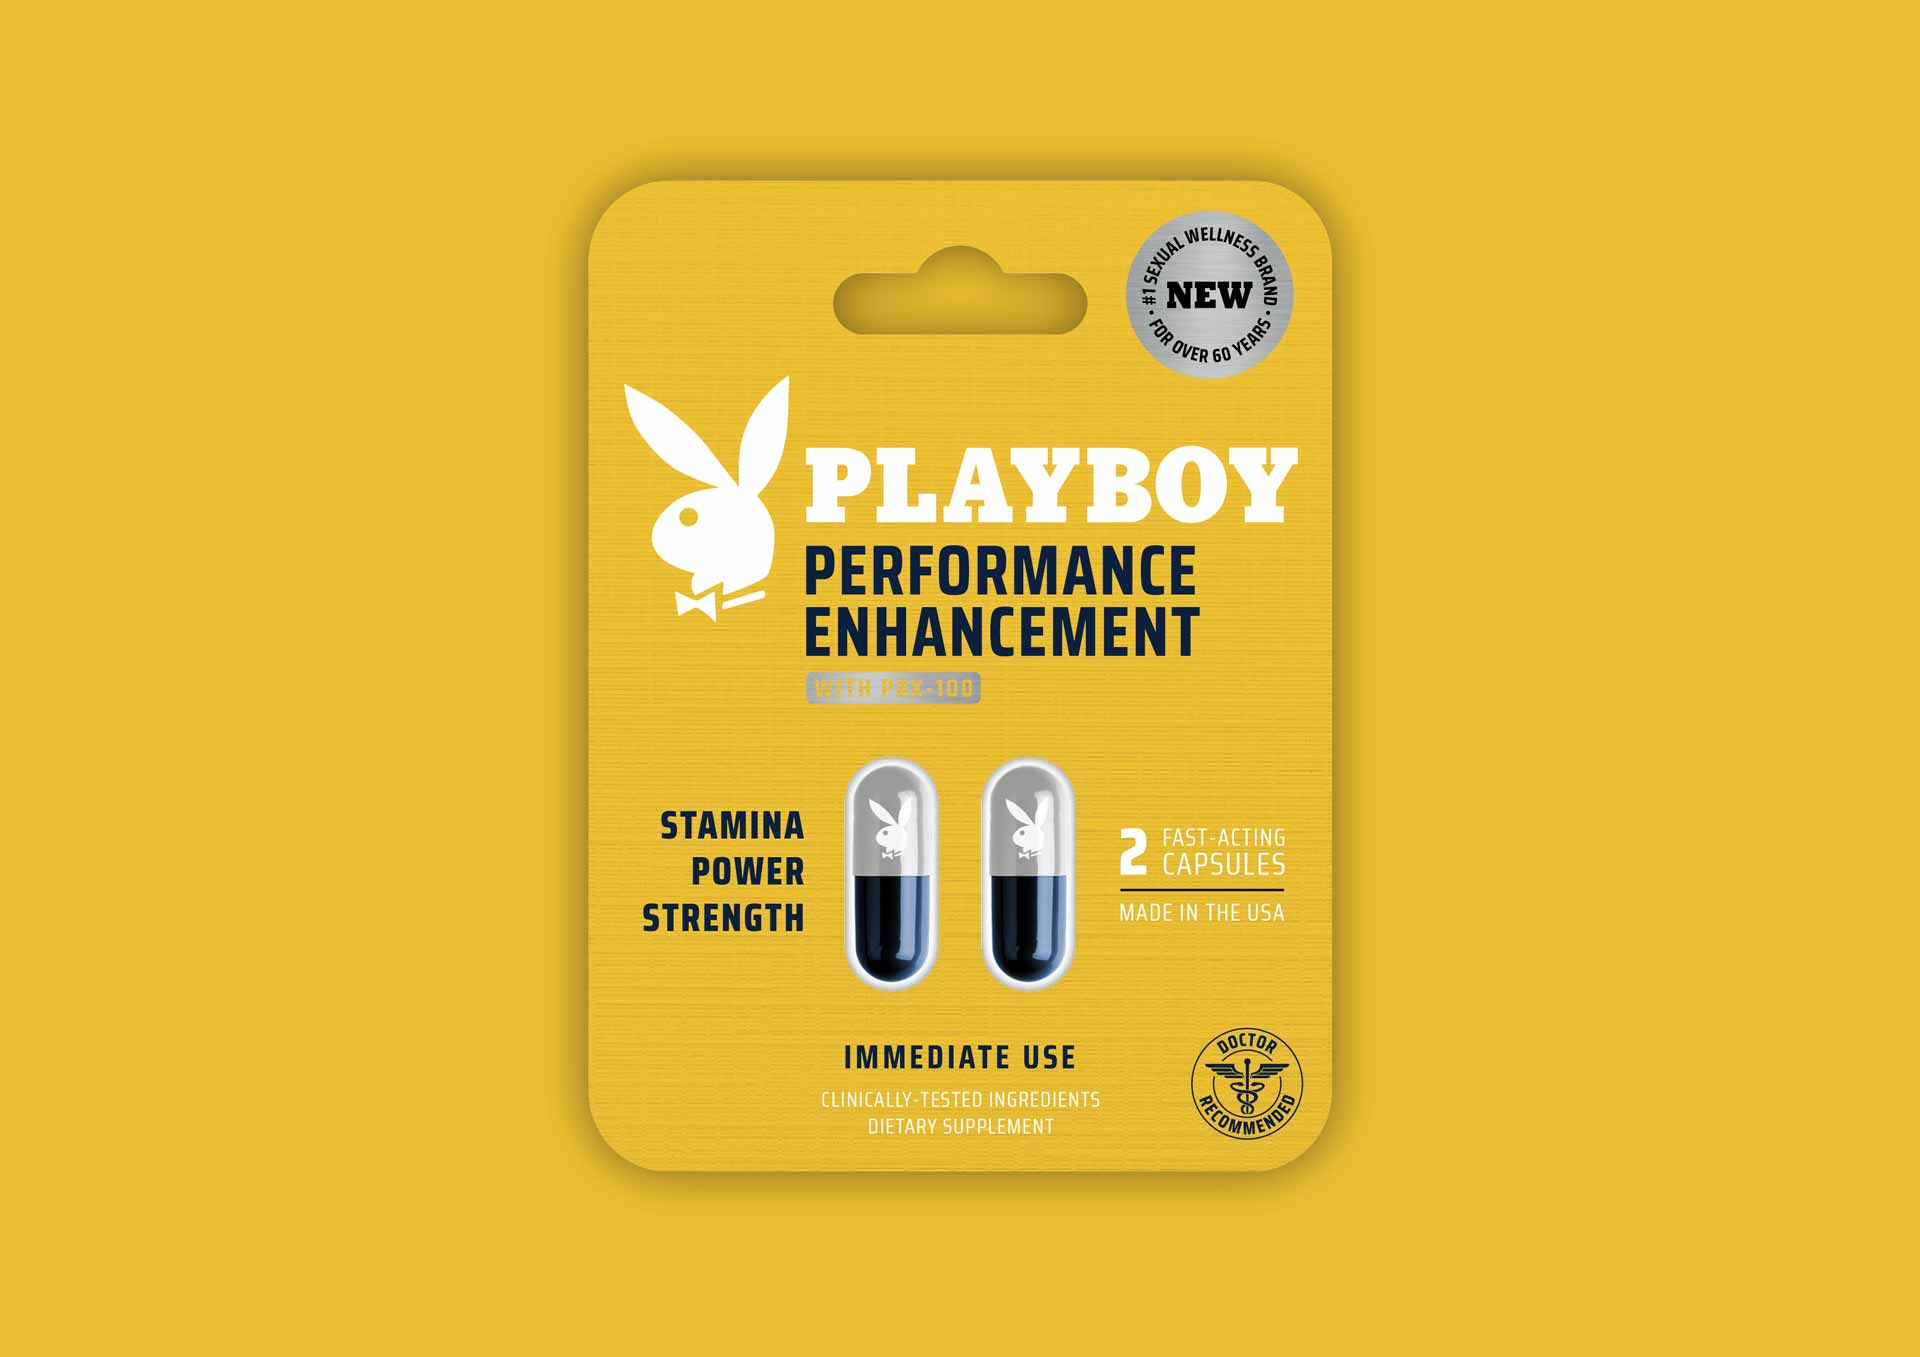 playboy-packaging-11